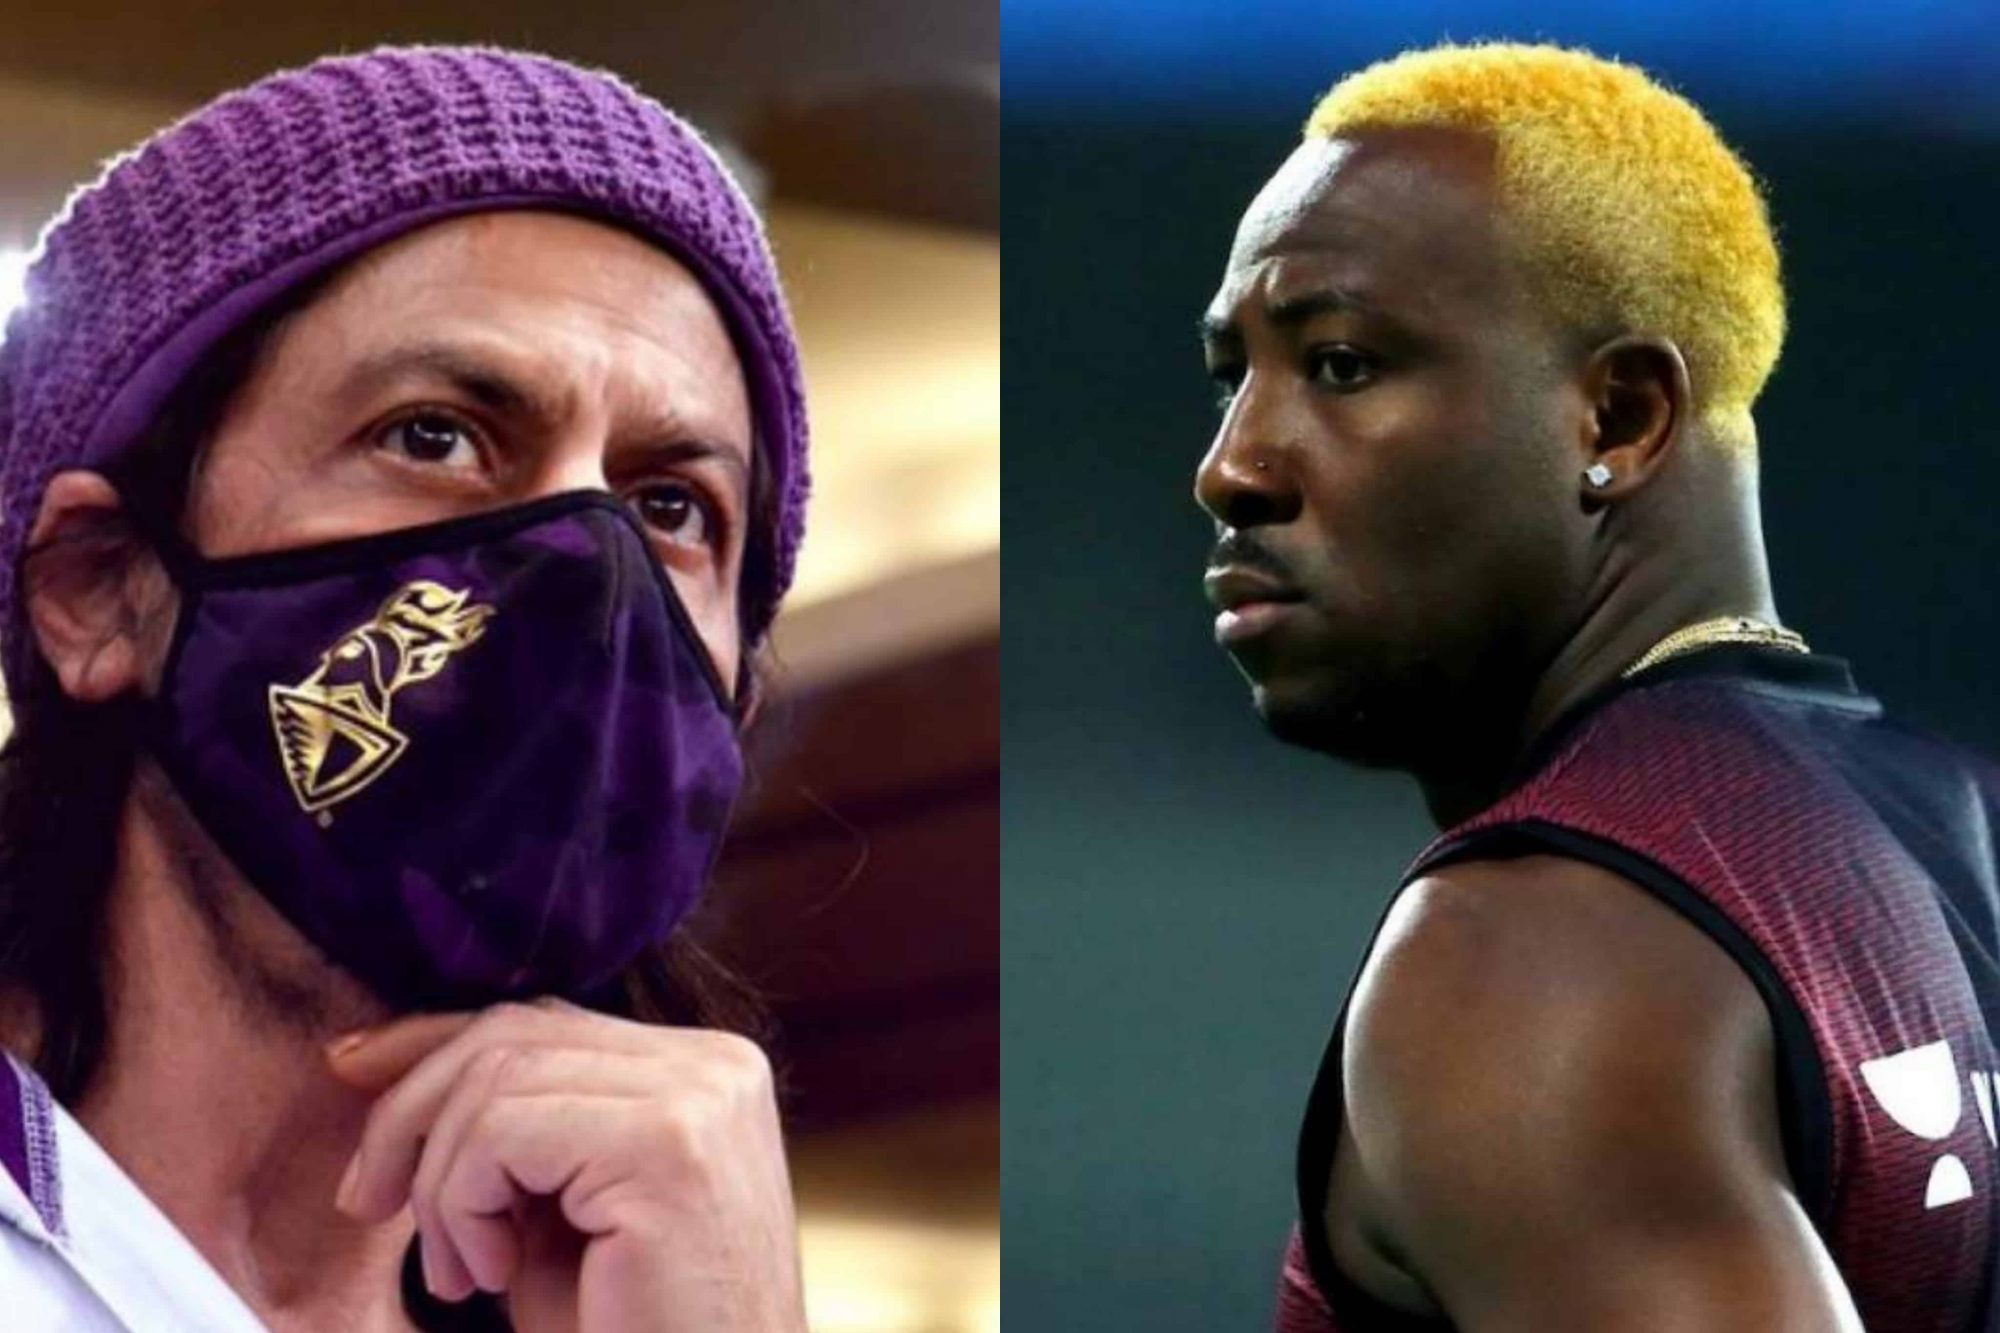 IPL 2021: Andre Russell Reacts To Shah Rukh Khan's Tweet After KKR's 10-Run Loss To MI